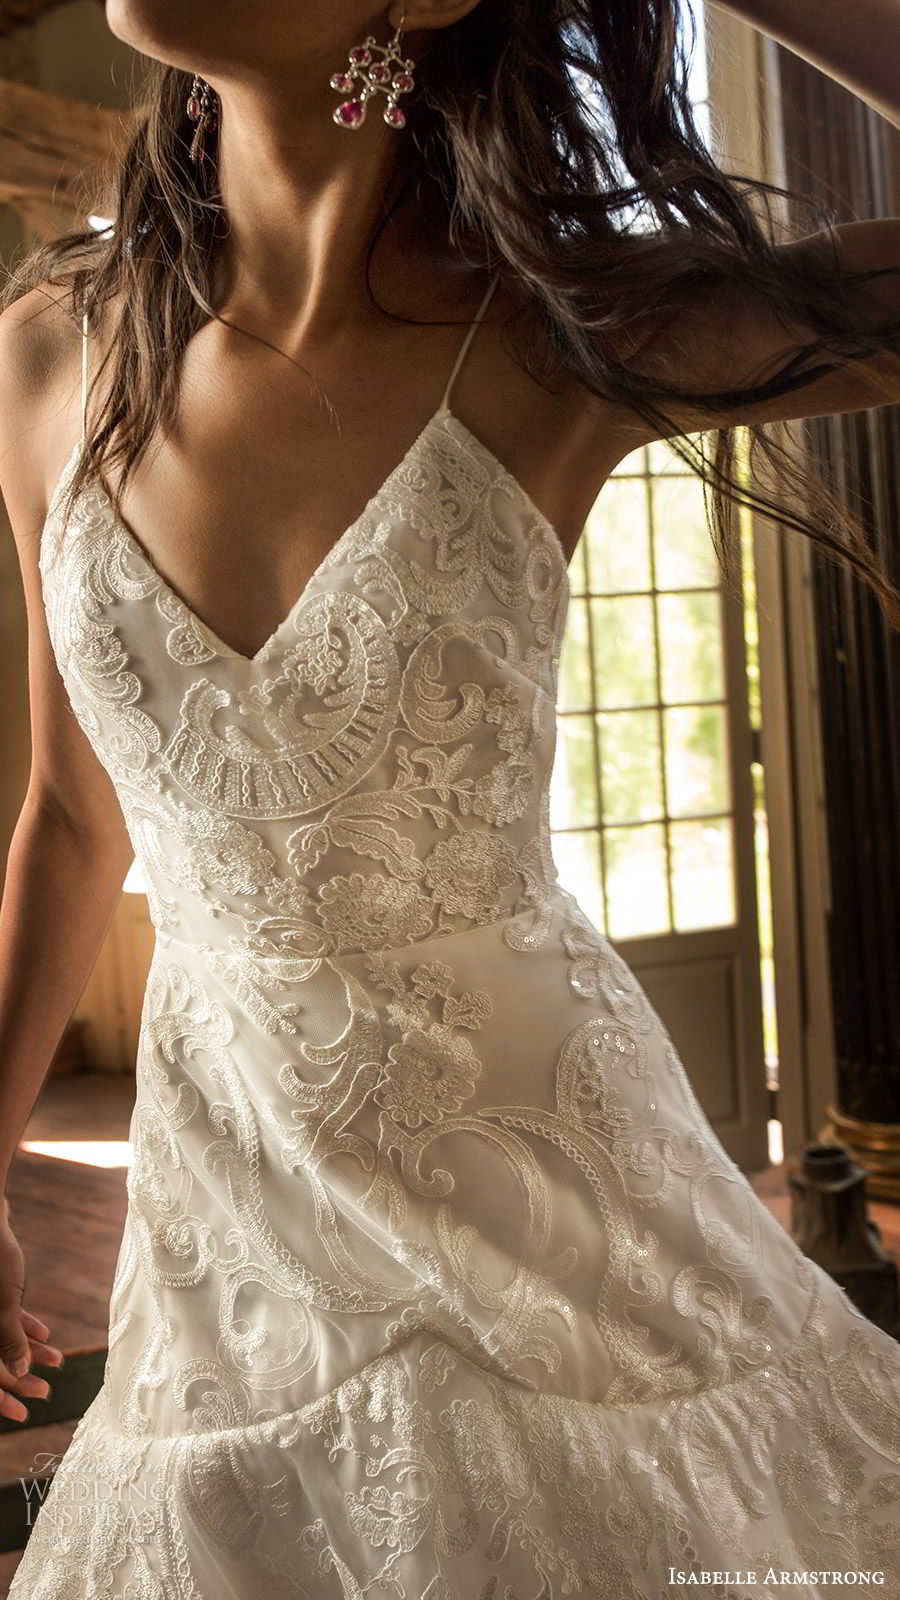 isabelle armstrong fall 2019 bridal sleeveless thin straps vneck embroidered lace a line ball gown wedding dress (13) romantic zv